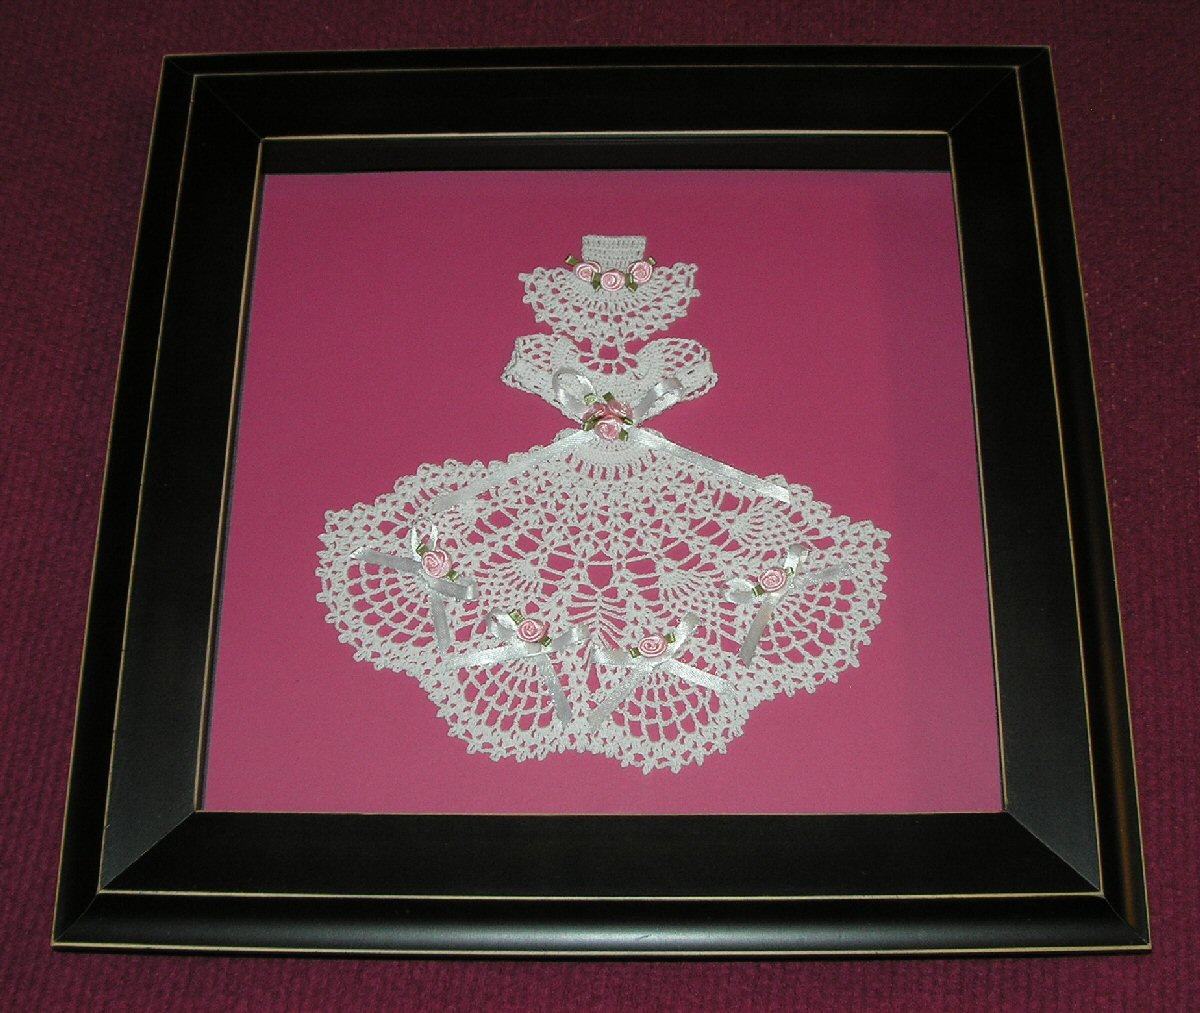 Crinoline Bride framed